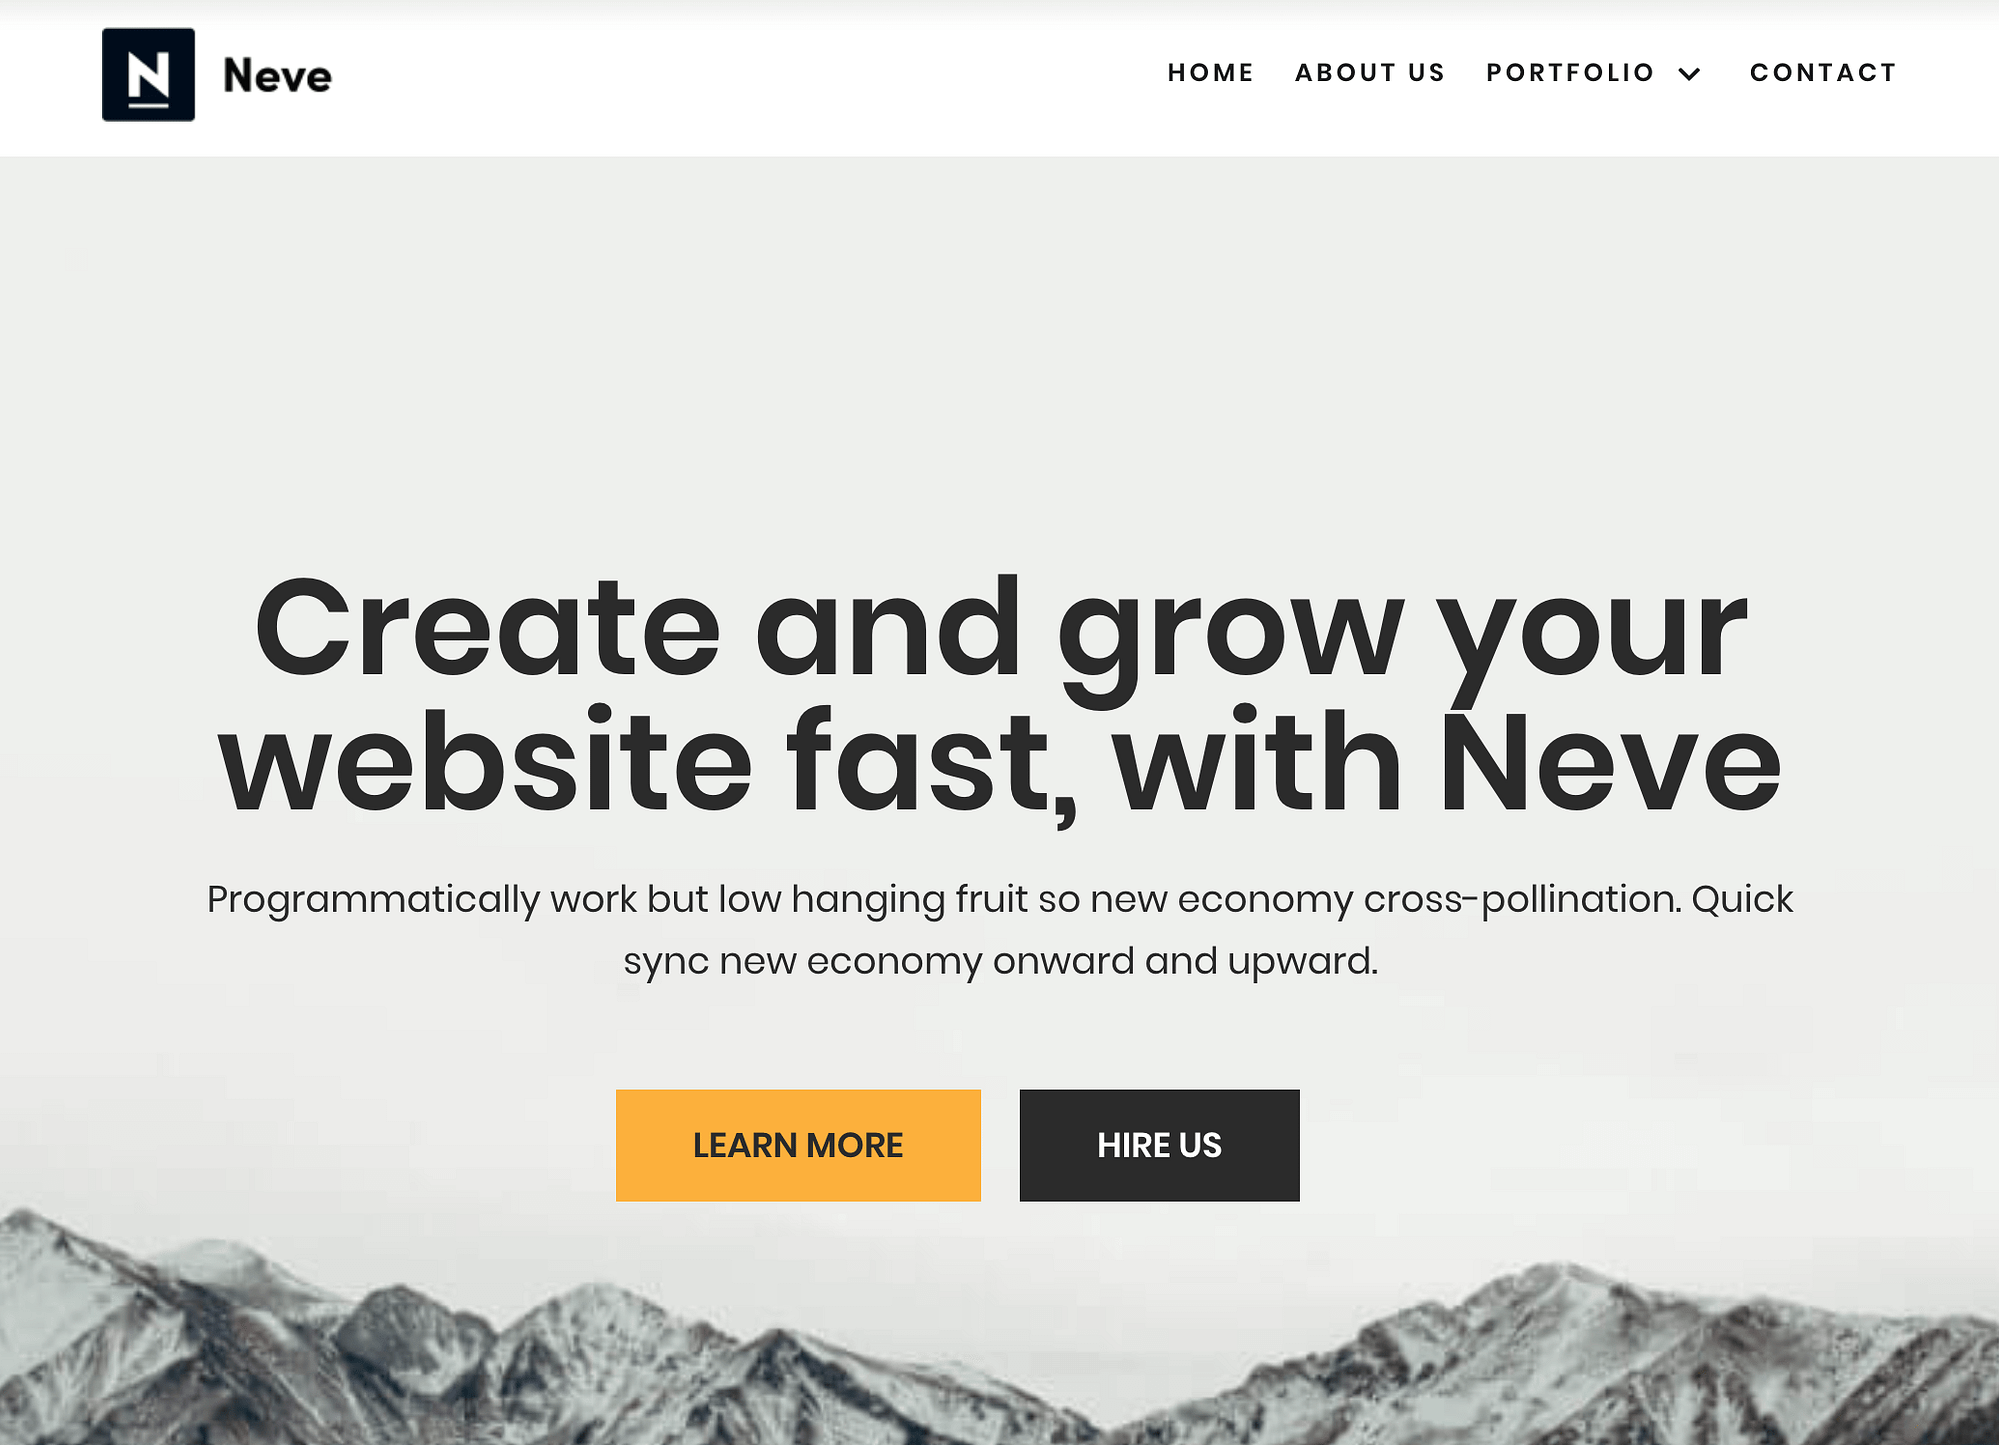 How to make a WordPress website: your new Neve home design